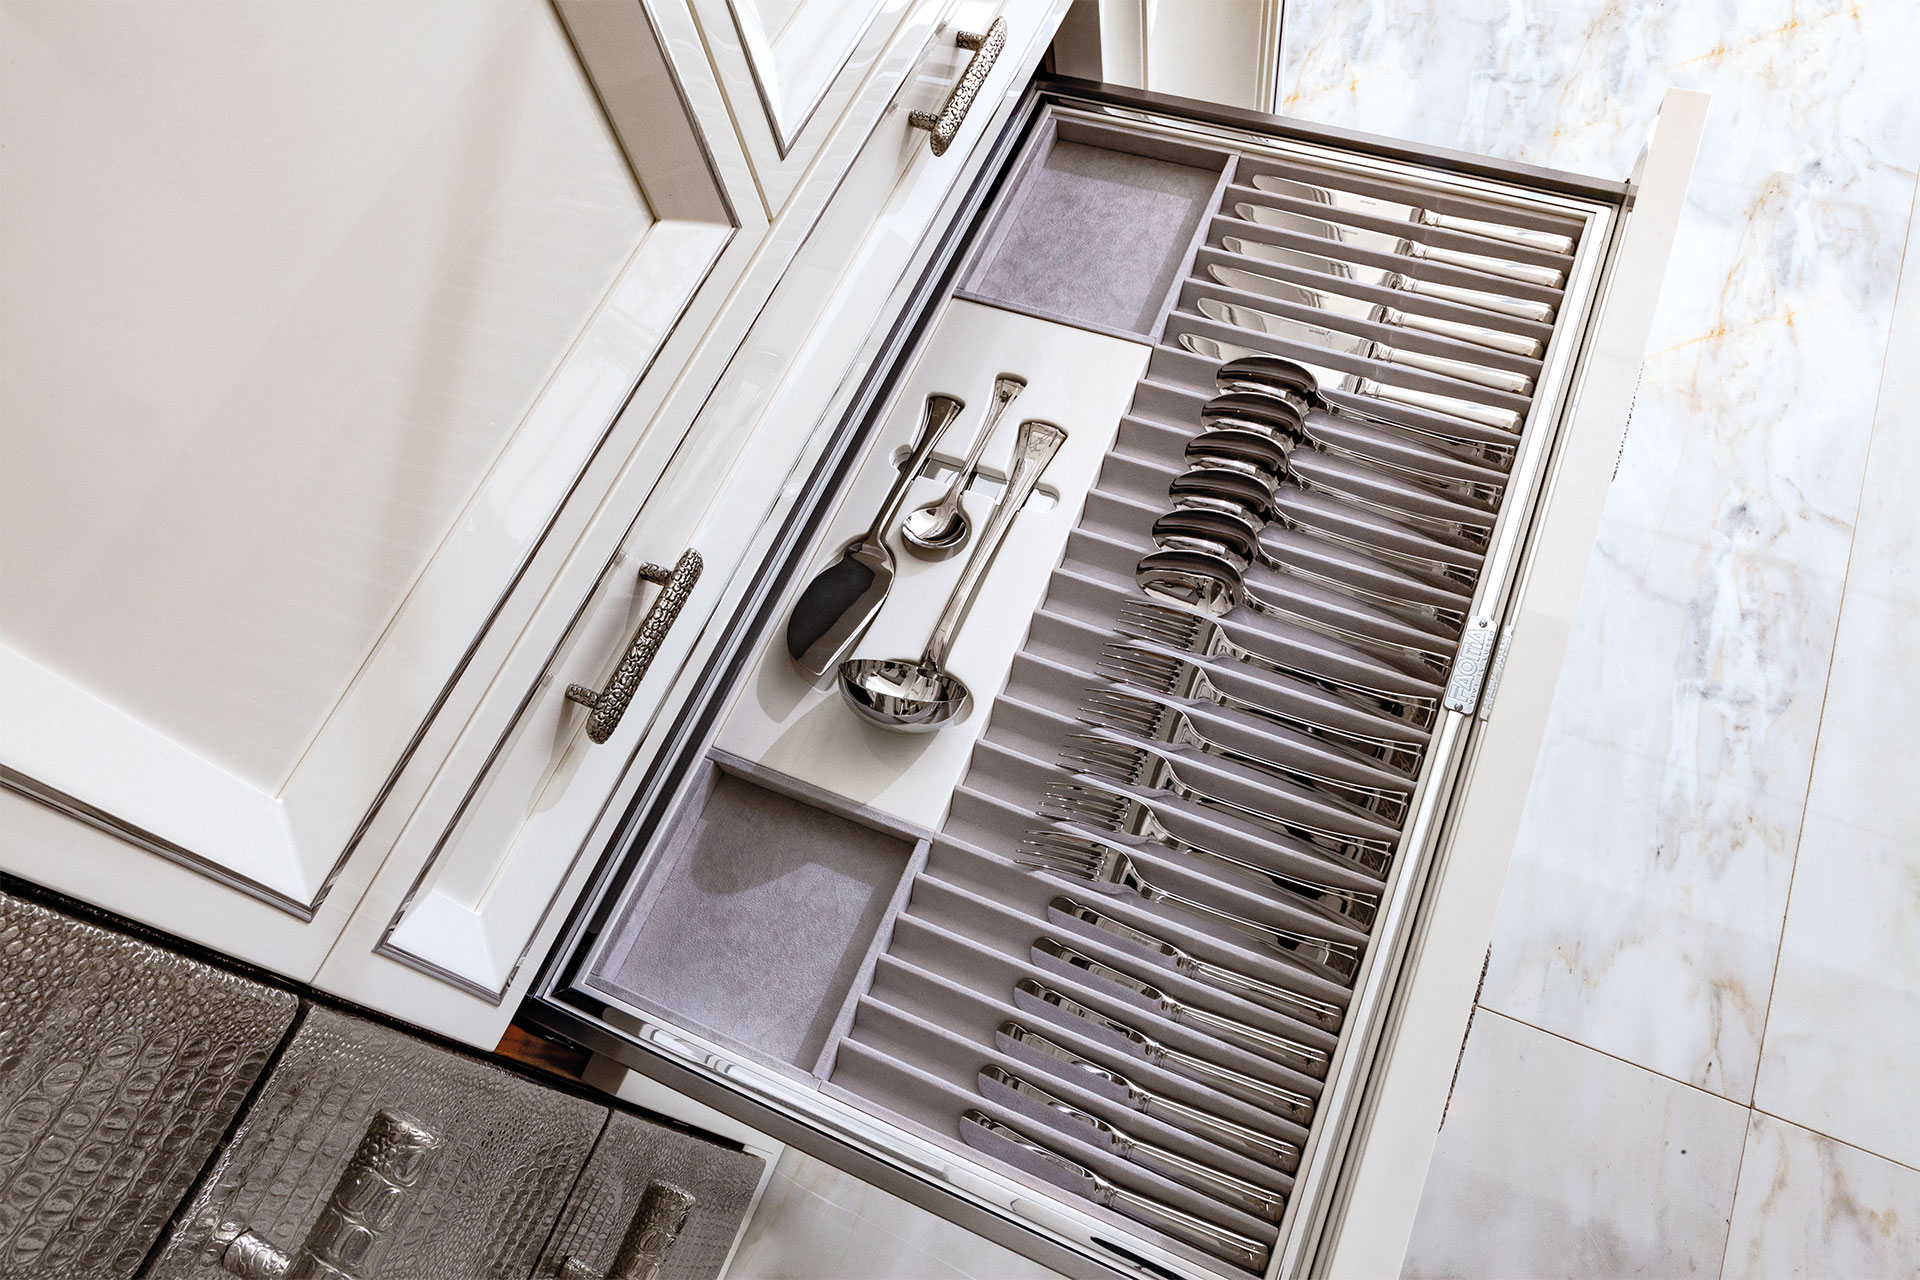 Faoma cutlery tray for kitchen